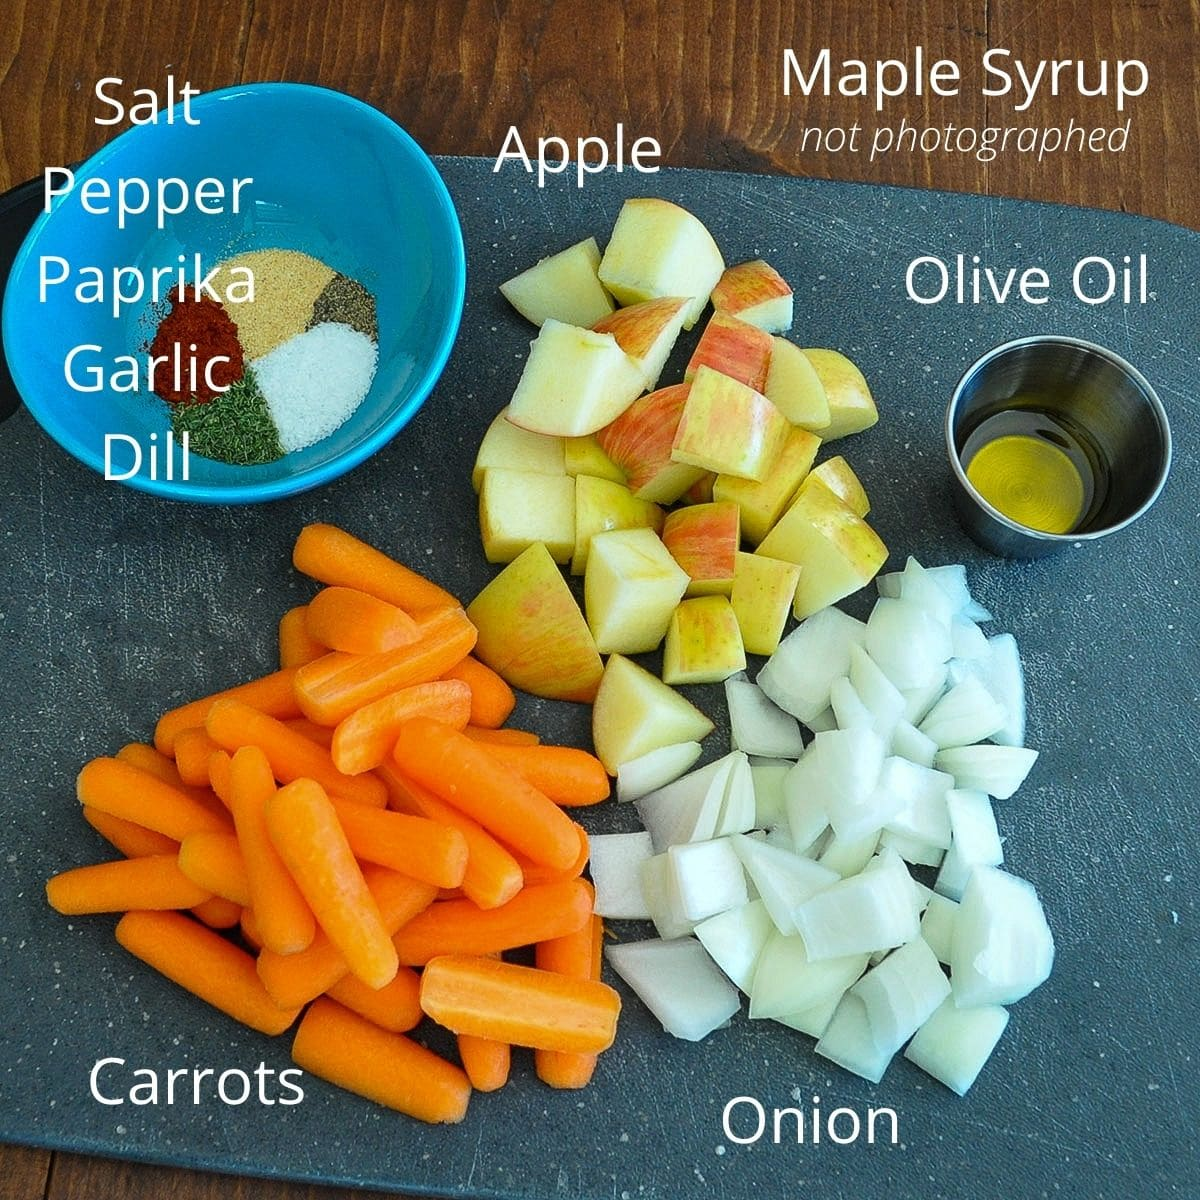 carrots, apples and onion on a cutting board next to a bowl of spices